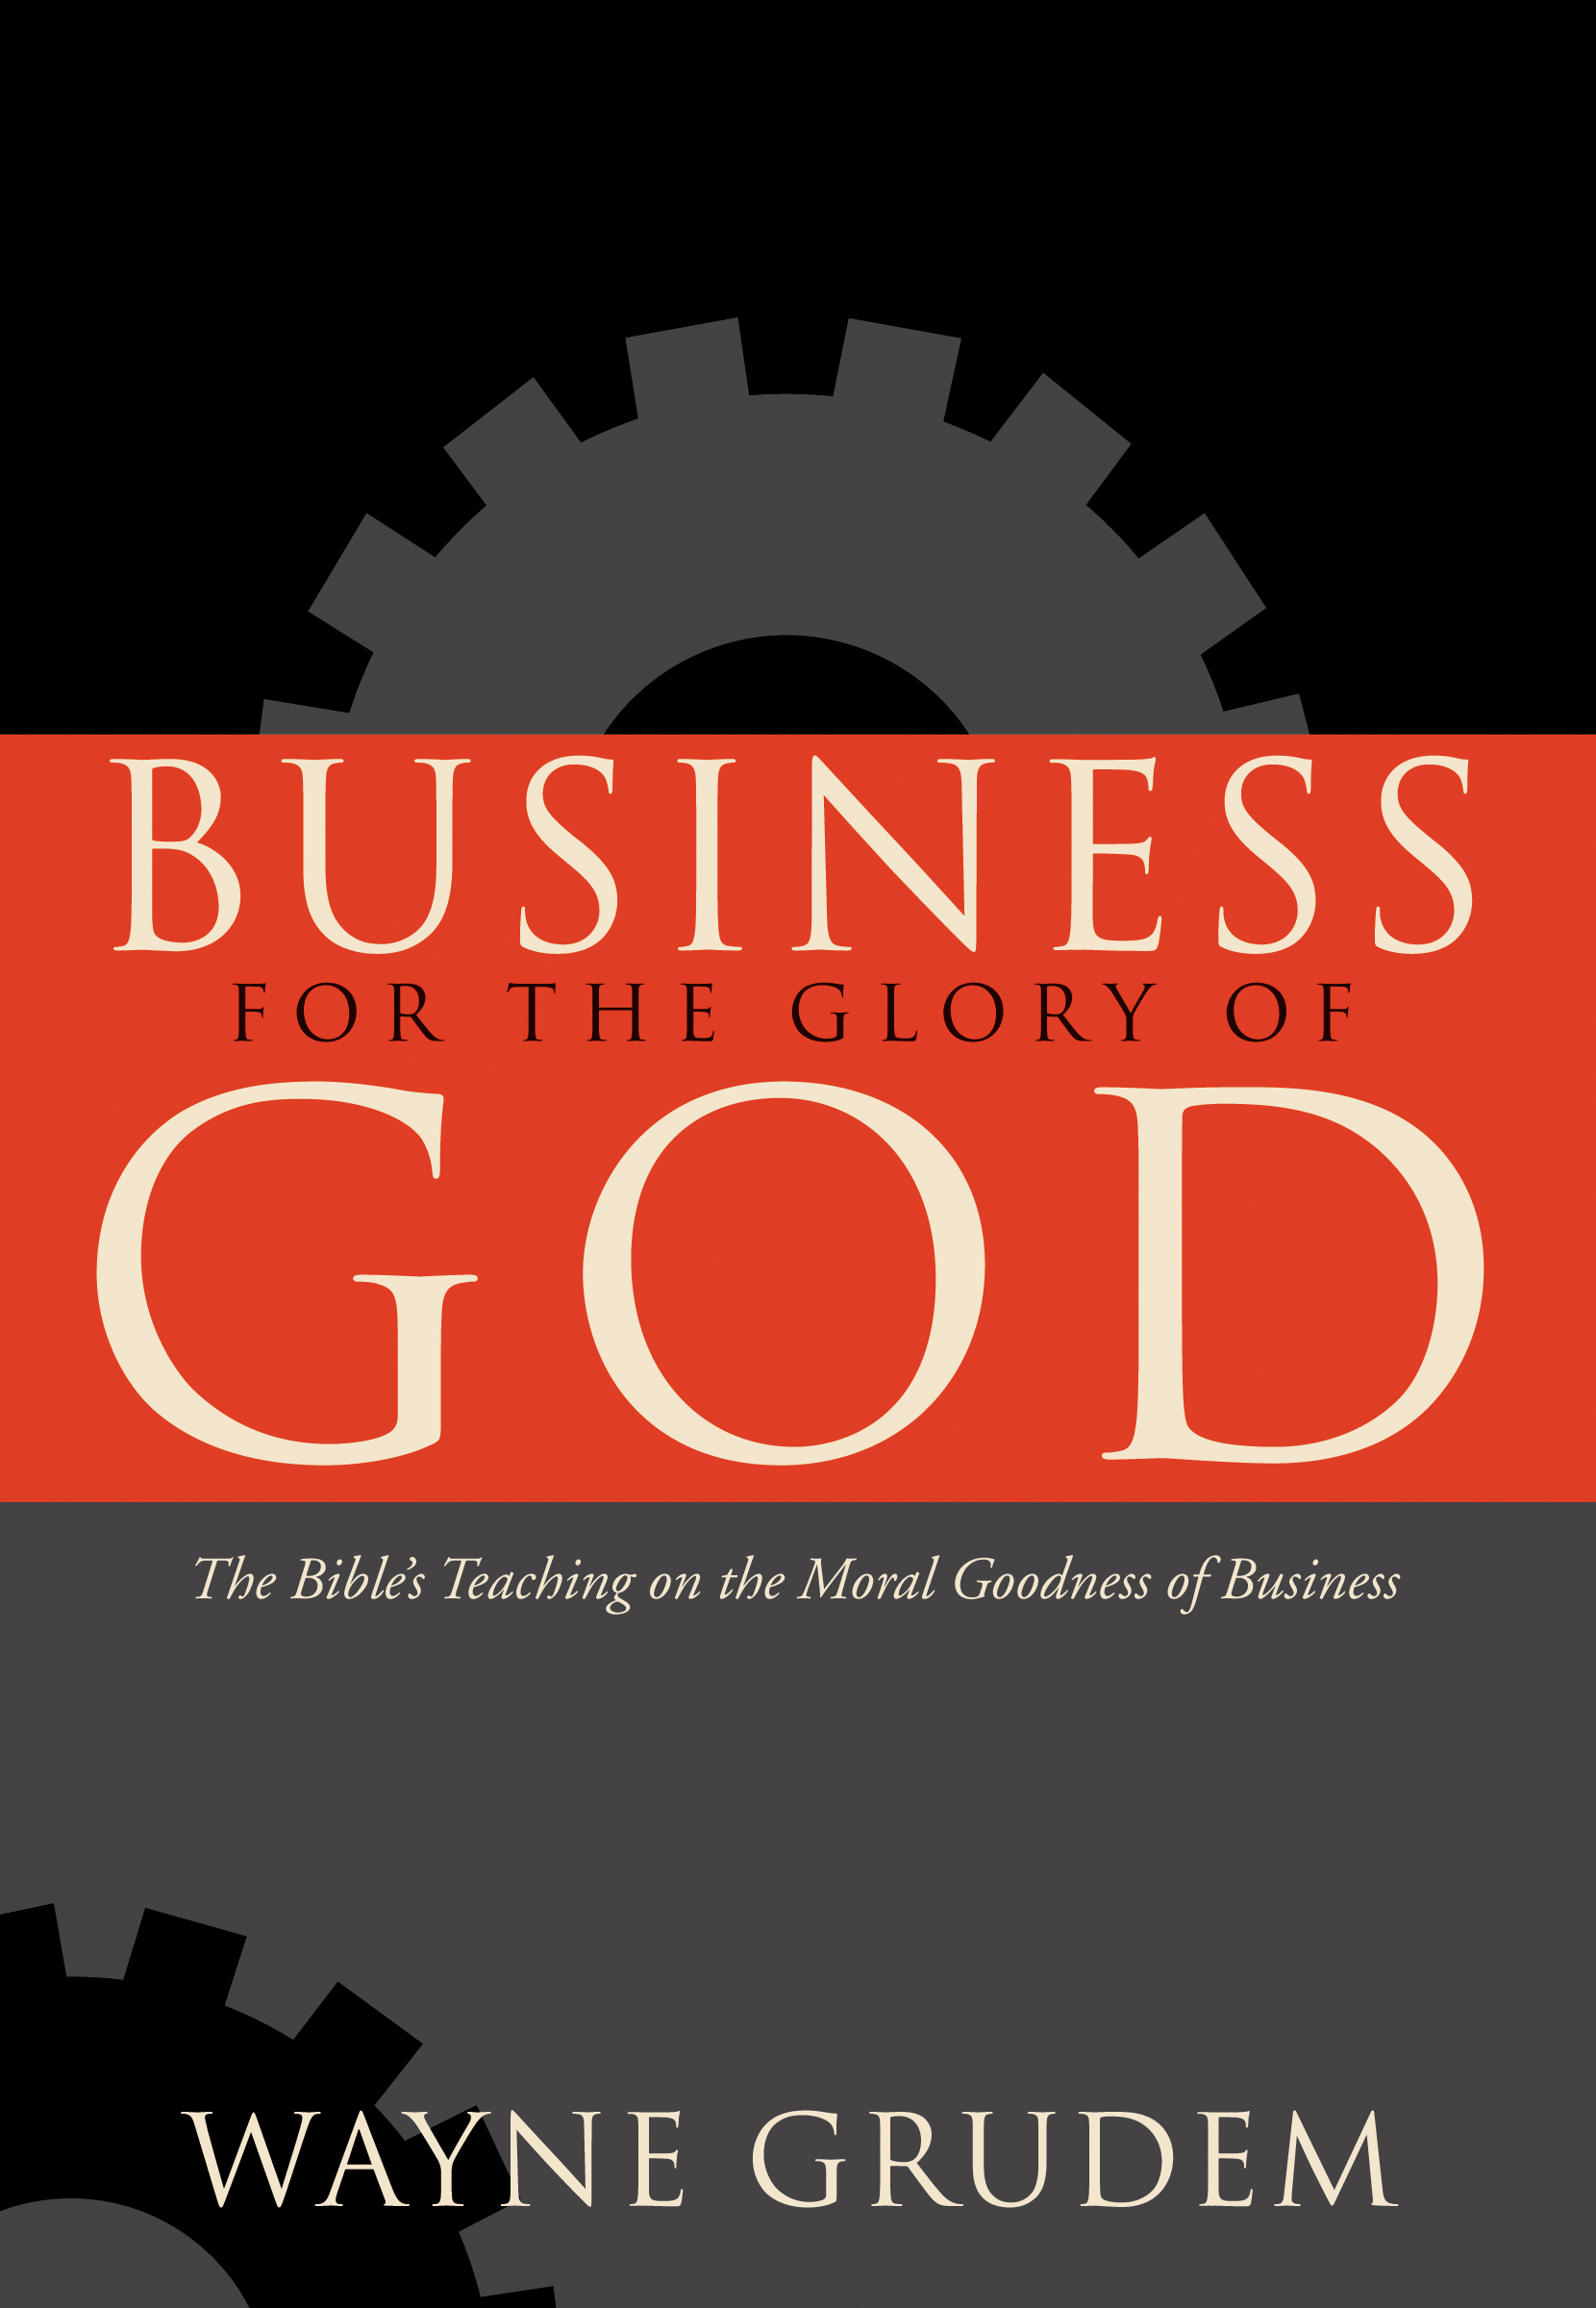 Business for the Glory of God